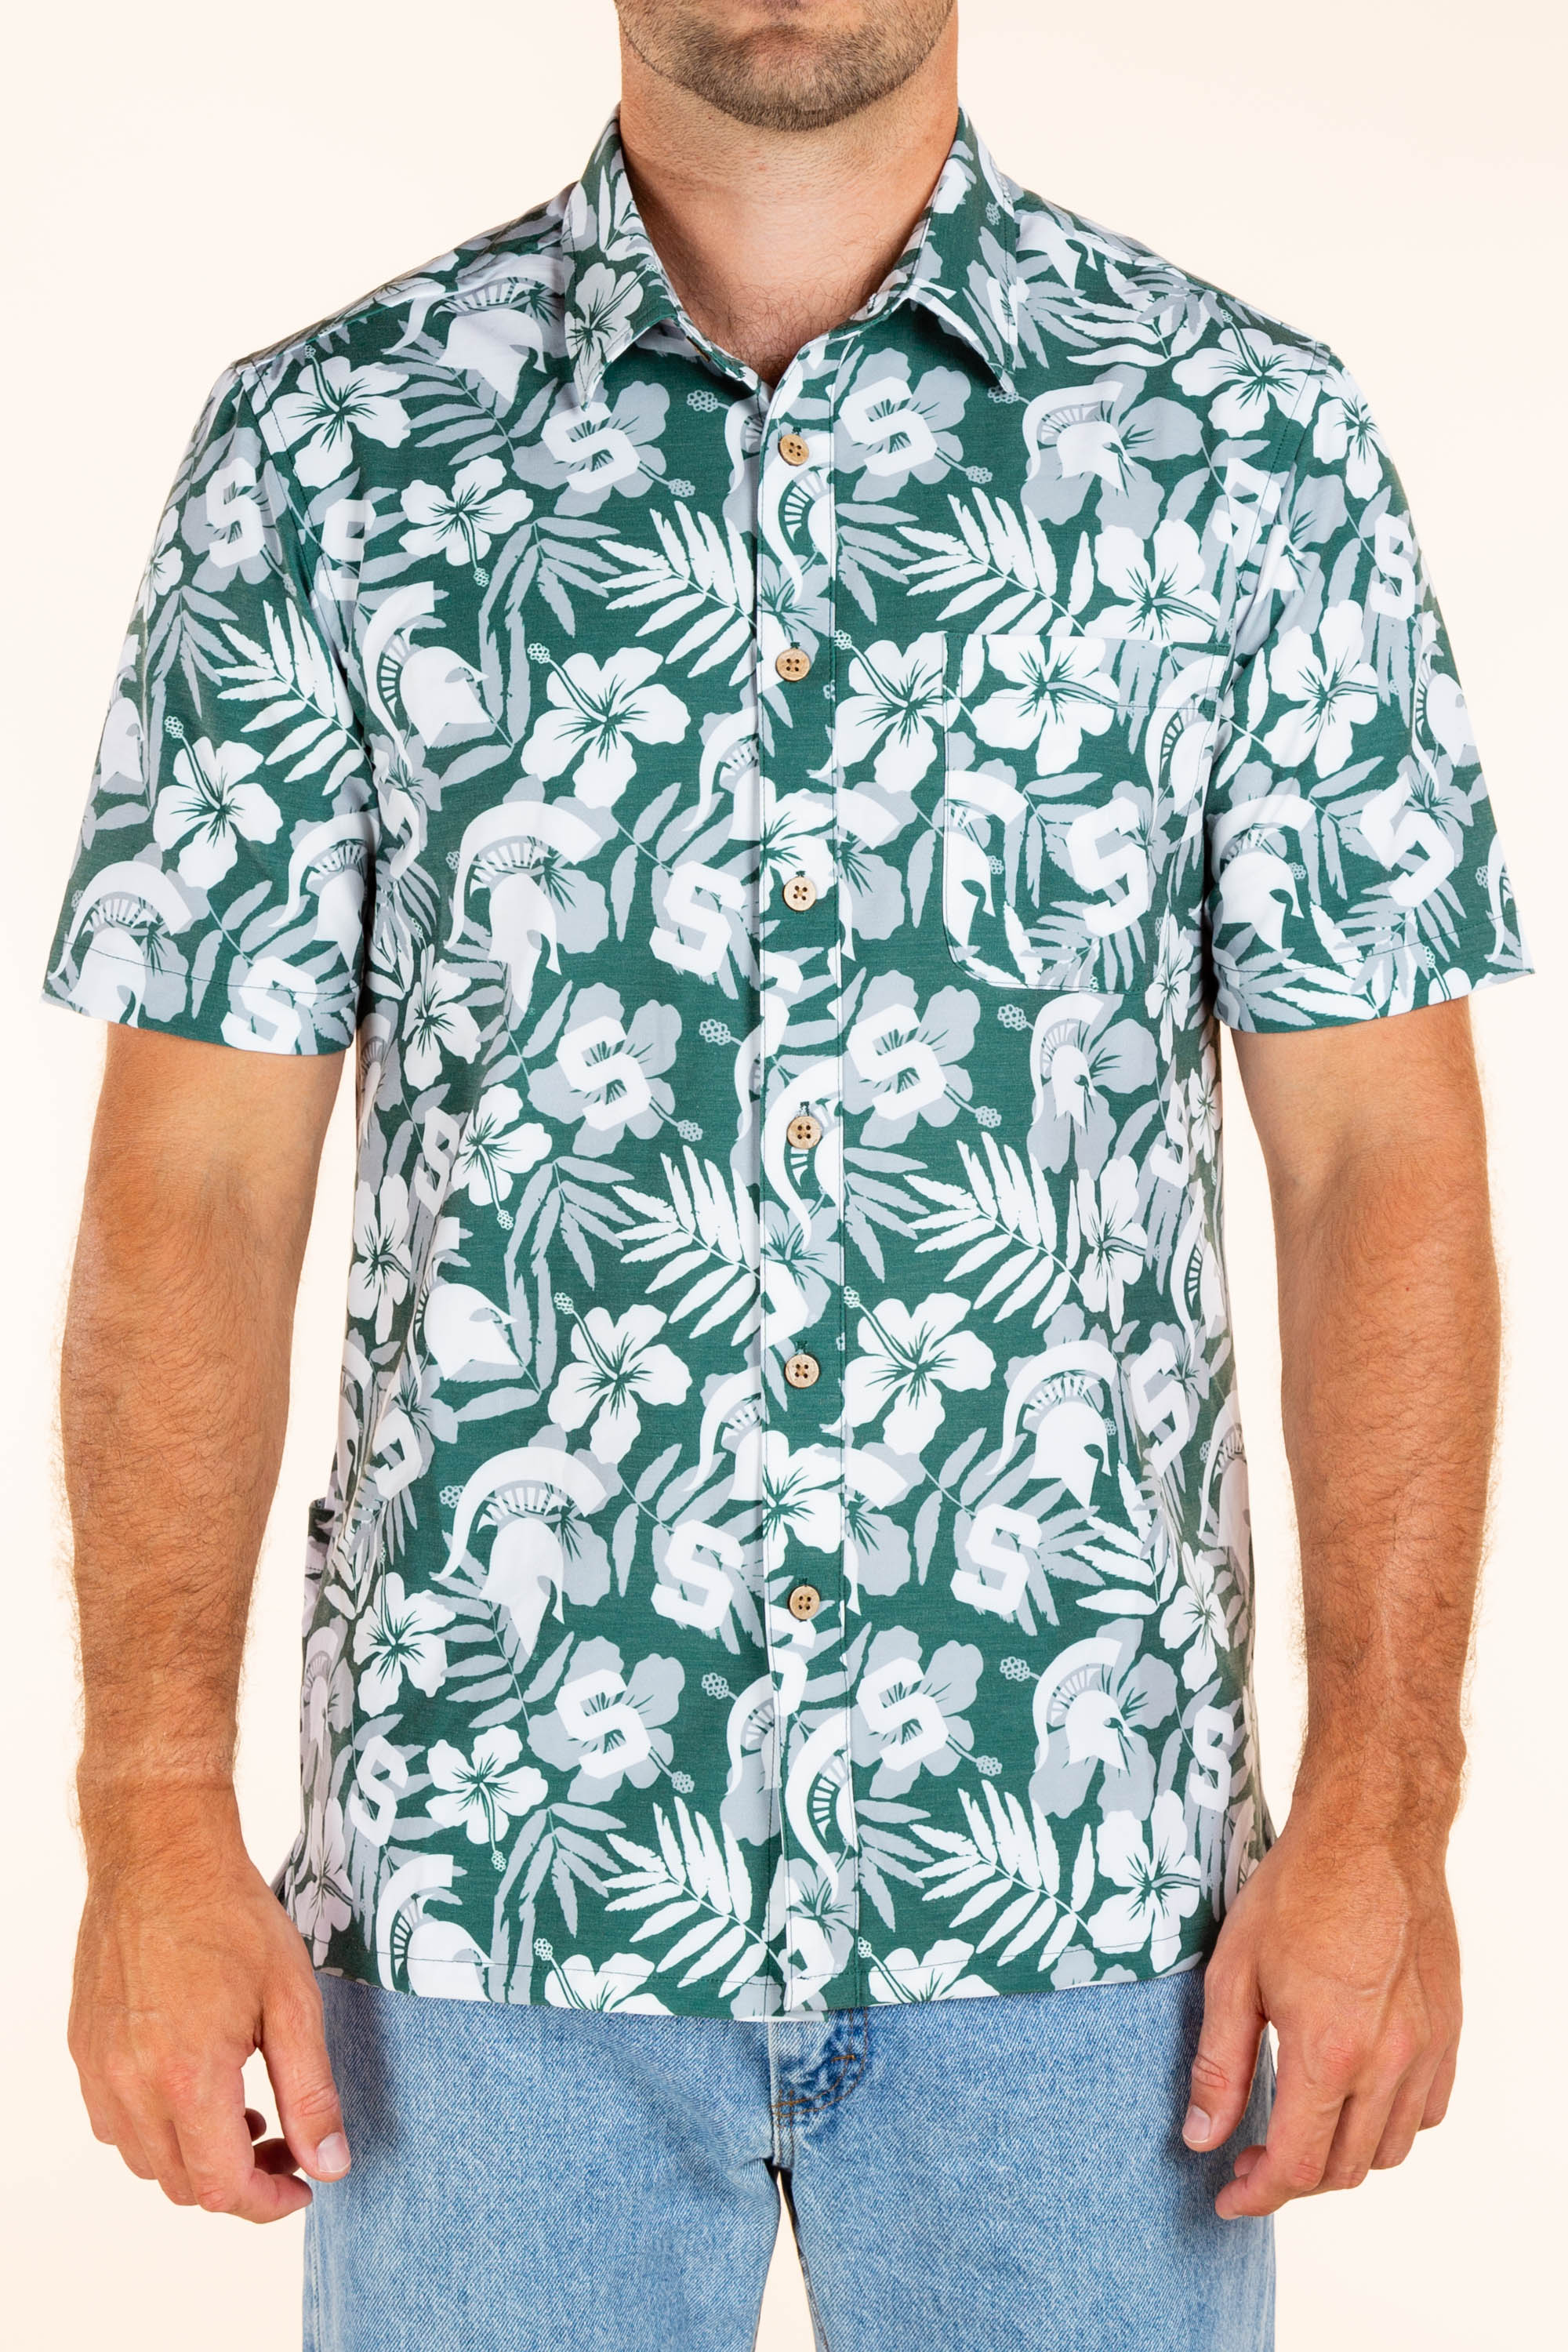 Michigan State Hawaiian Tailgating Shirt